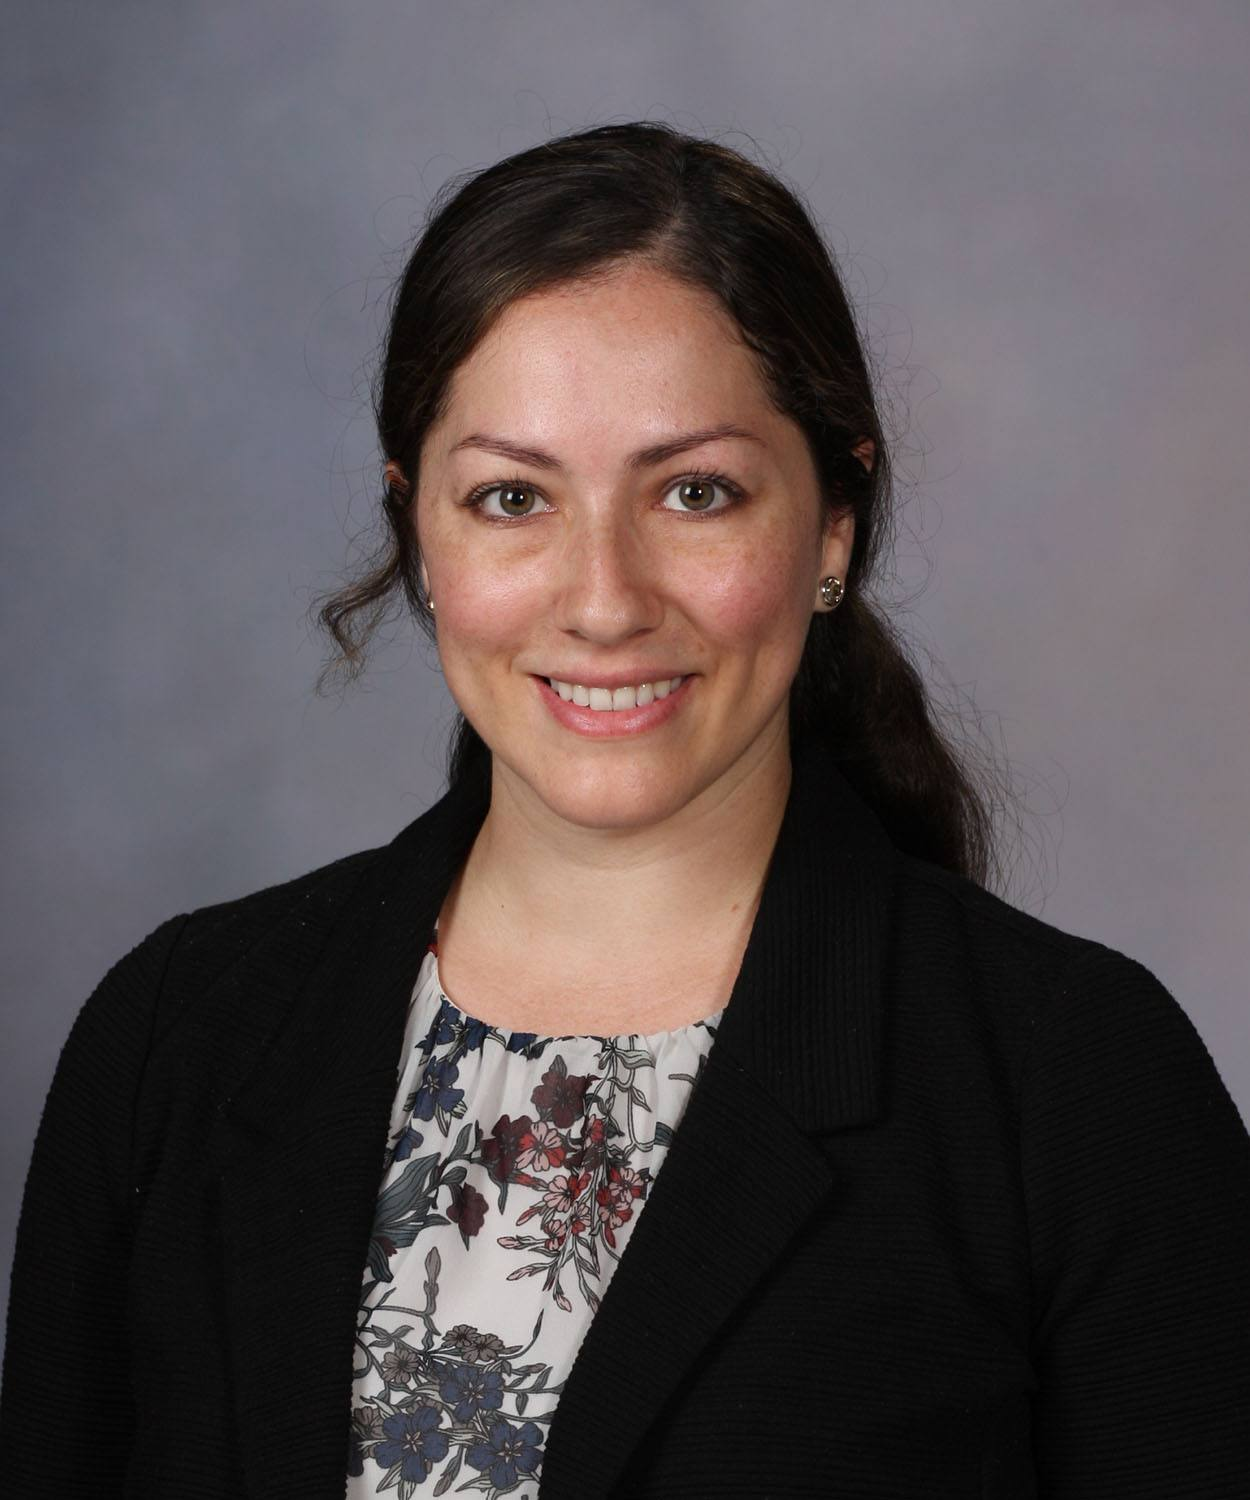 Photo of Rebecca Marrero Rolon, M.D., Fellow, Clinical Microbiology, Mayo Clinic